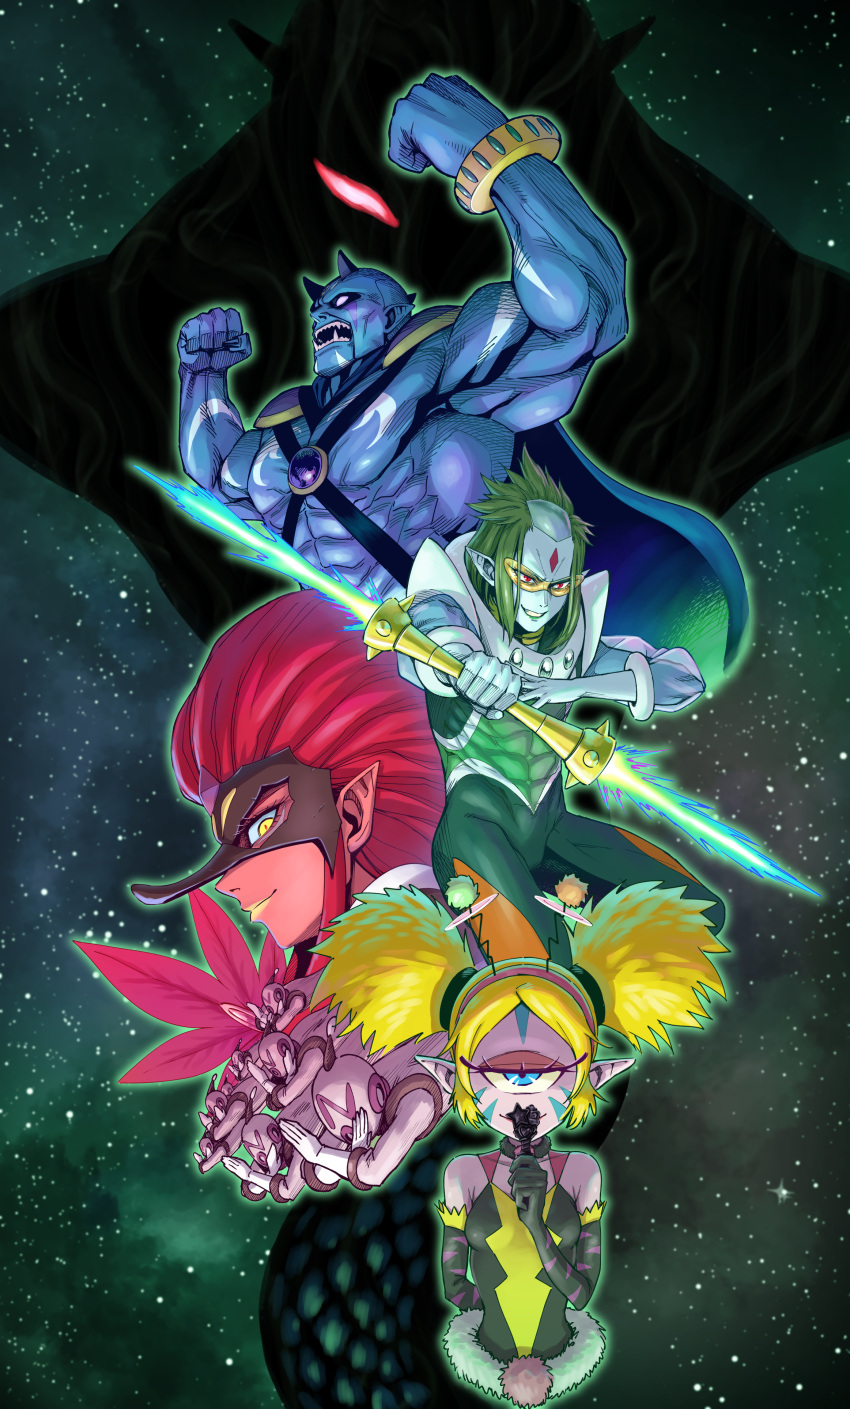 2girls 6+boys abs absurdres antennae arm_behind_back armpits bare_shoulders bindi black_mask blank_eyes blonde_hair blue_cape blue_eyes blue_skin bodypaint bodysuit cape closed_mouth cobra_(animal) colored_skin cropped_torso cyclops dark_pen darknest elbow_gloves energy_sword evil_grin evil_smile eyelashes eyeshadow eyewon_(precure) facepaint fangs from_side fur_trim garuouga_(precure) gloves glowing glowing_eyes green_bodysuit green_hair green_sky grin hairband half-closed_eyes highres itou_shin'ichi kappa kappard_(precure) lipstick looking_at_viewer makeup mask milky_way multiple_boys multiple_girls muscular muscular_male no no_pupils notray_(precure) one-eyed oni open_mouth pink_eyeshadow pink_hairband pink_skin pointy_ears portrait precure red_eyes red_lips red_pupils red_skin redhead shirtless sideways_glance sky smile spacesuit star_(sky) star_twinkle_precure starry_sky striped striped_gloves sunglasses sword tengu_mask tenjou_(precure) toned toned_male violet_eyes weapon x_arms yellow-tinted_eyewear yellow_eyes yellow_lips